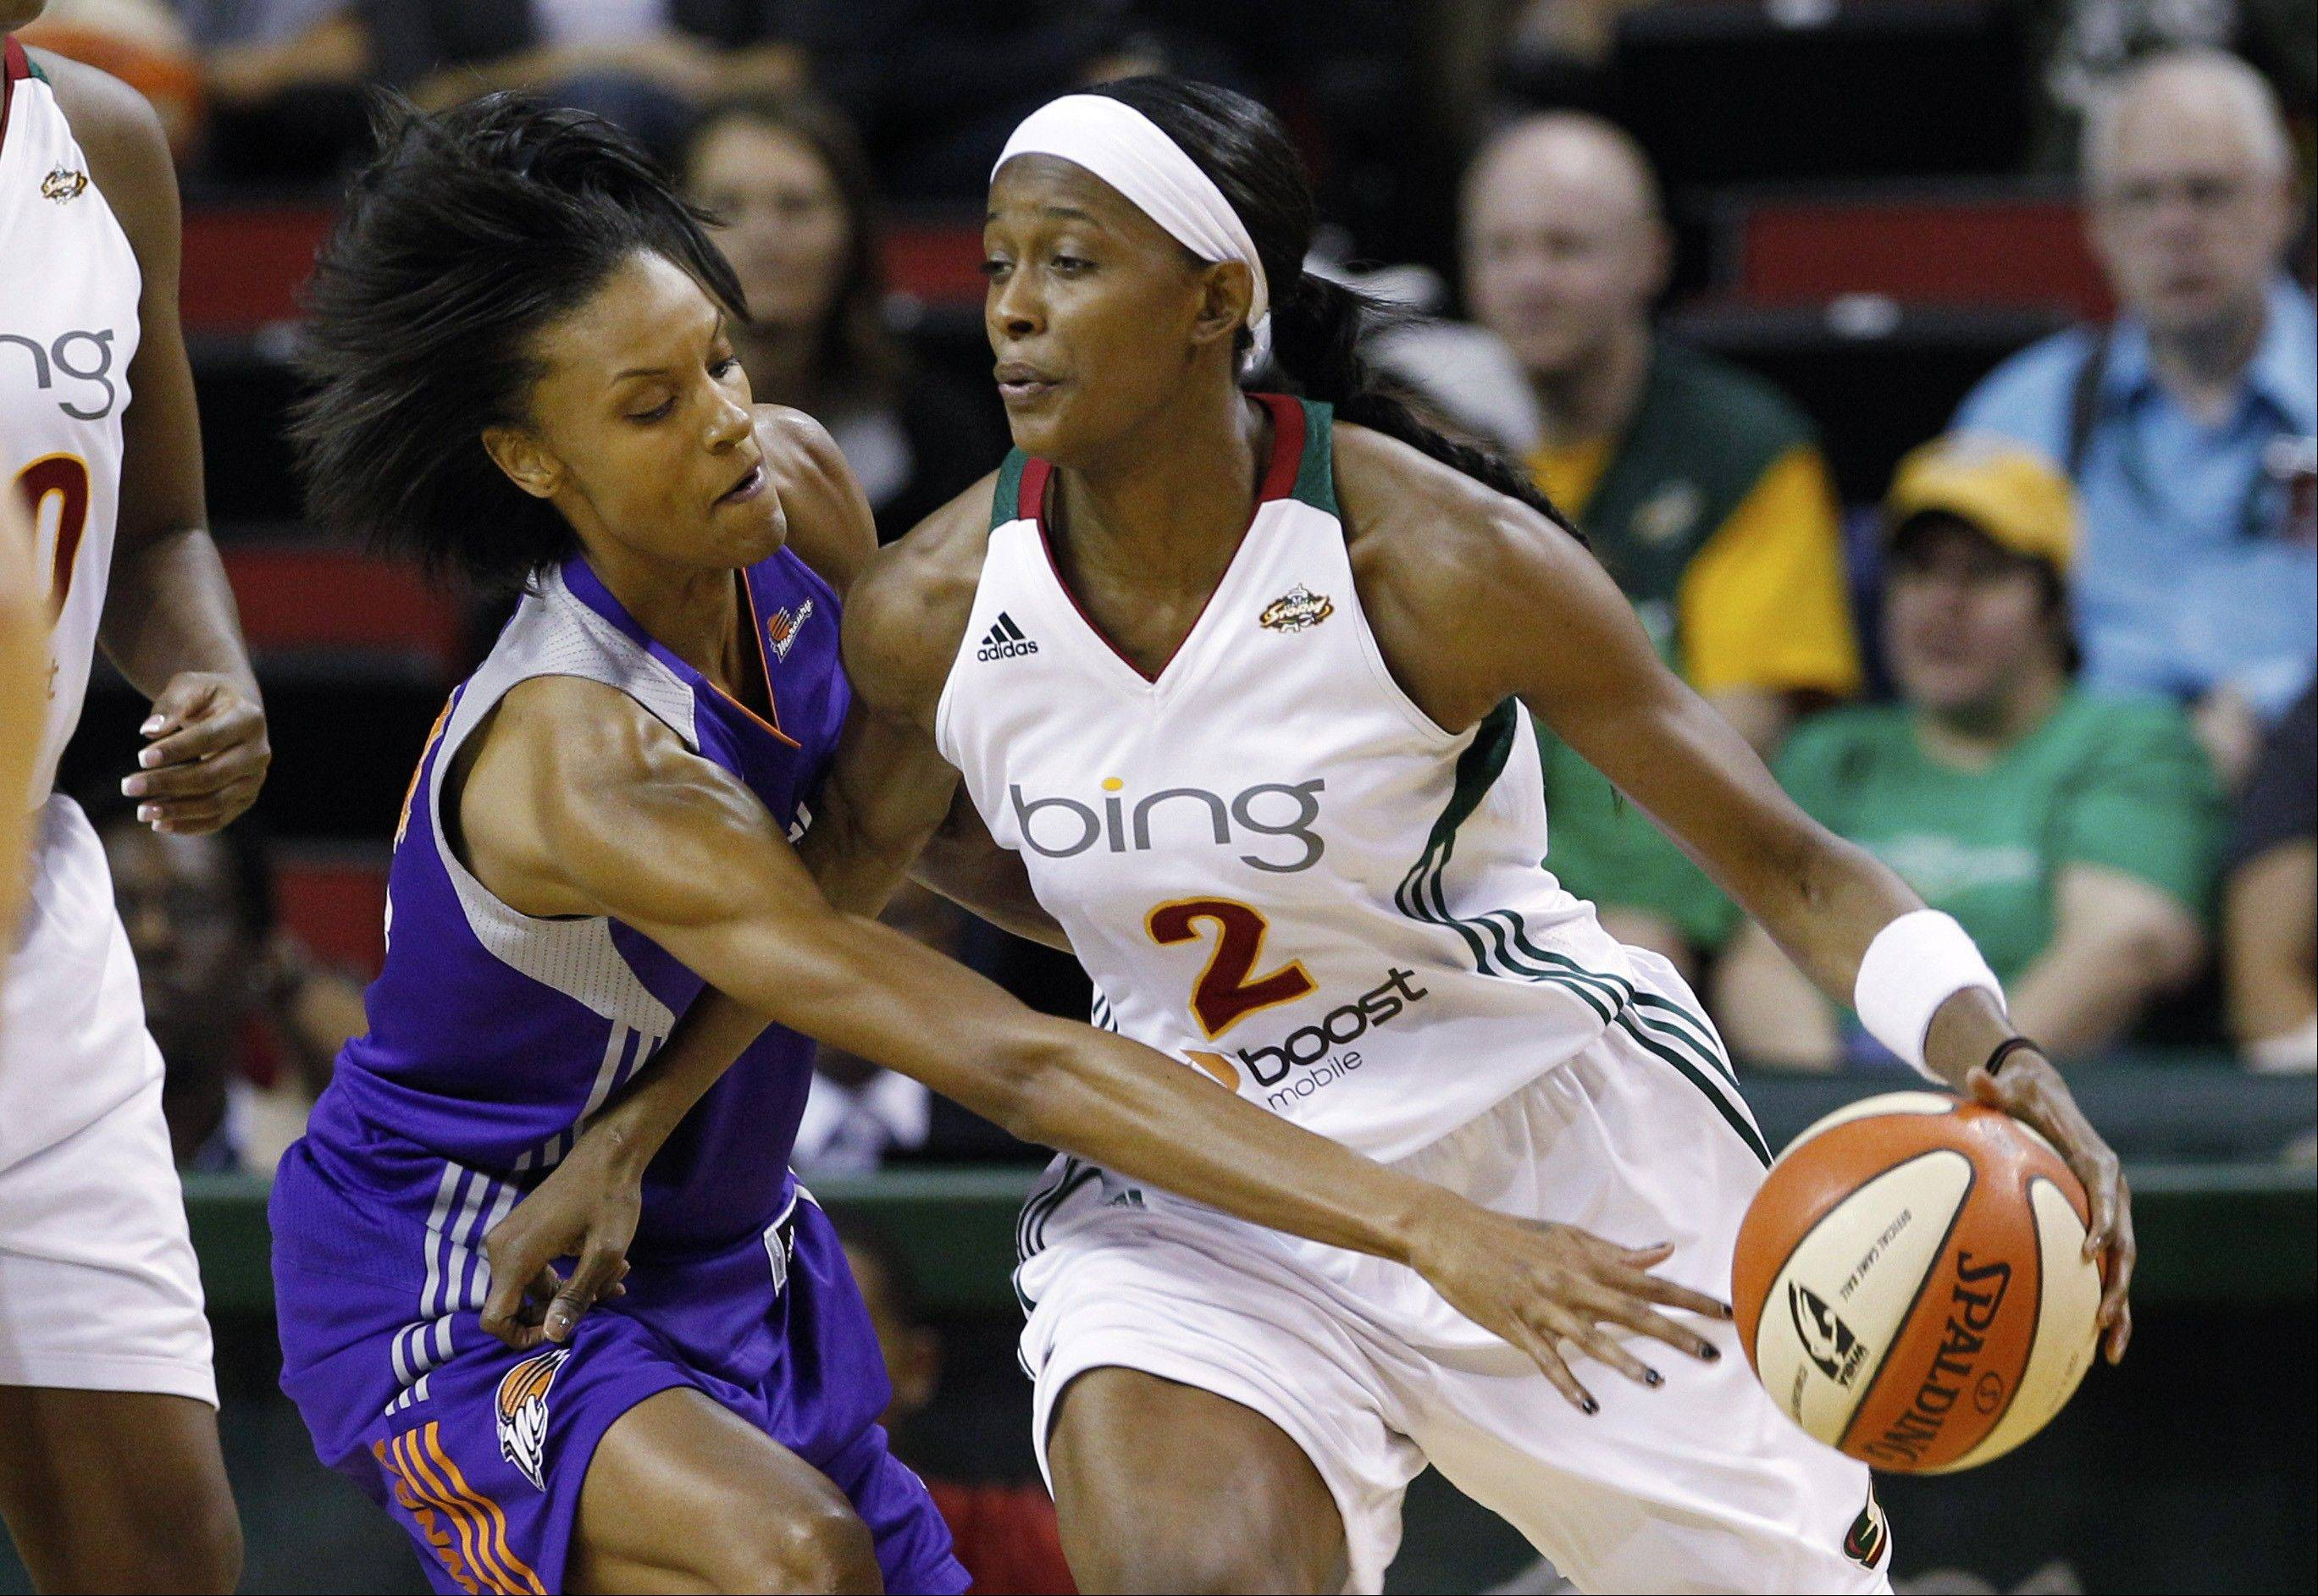 Veteran forward Swin Cash, right, was traded by Seattle to the Chicago Sky, team officials announced Monday. Cash has won three WNBA titles in 10 seasons and been to the playoffs nine times.